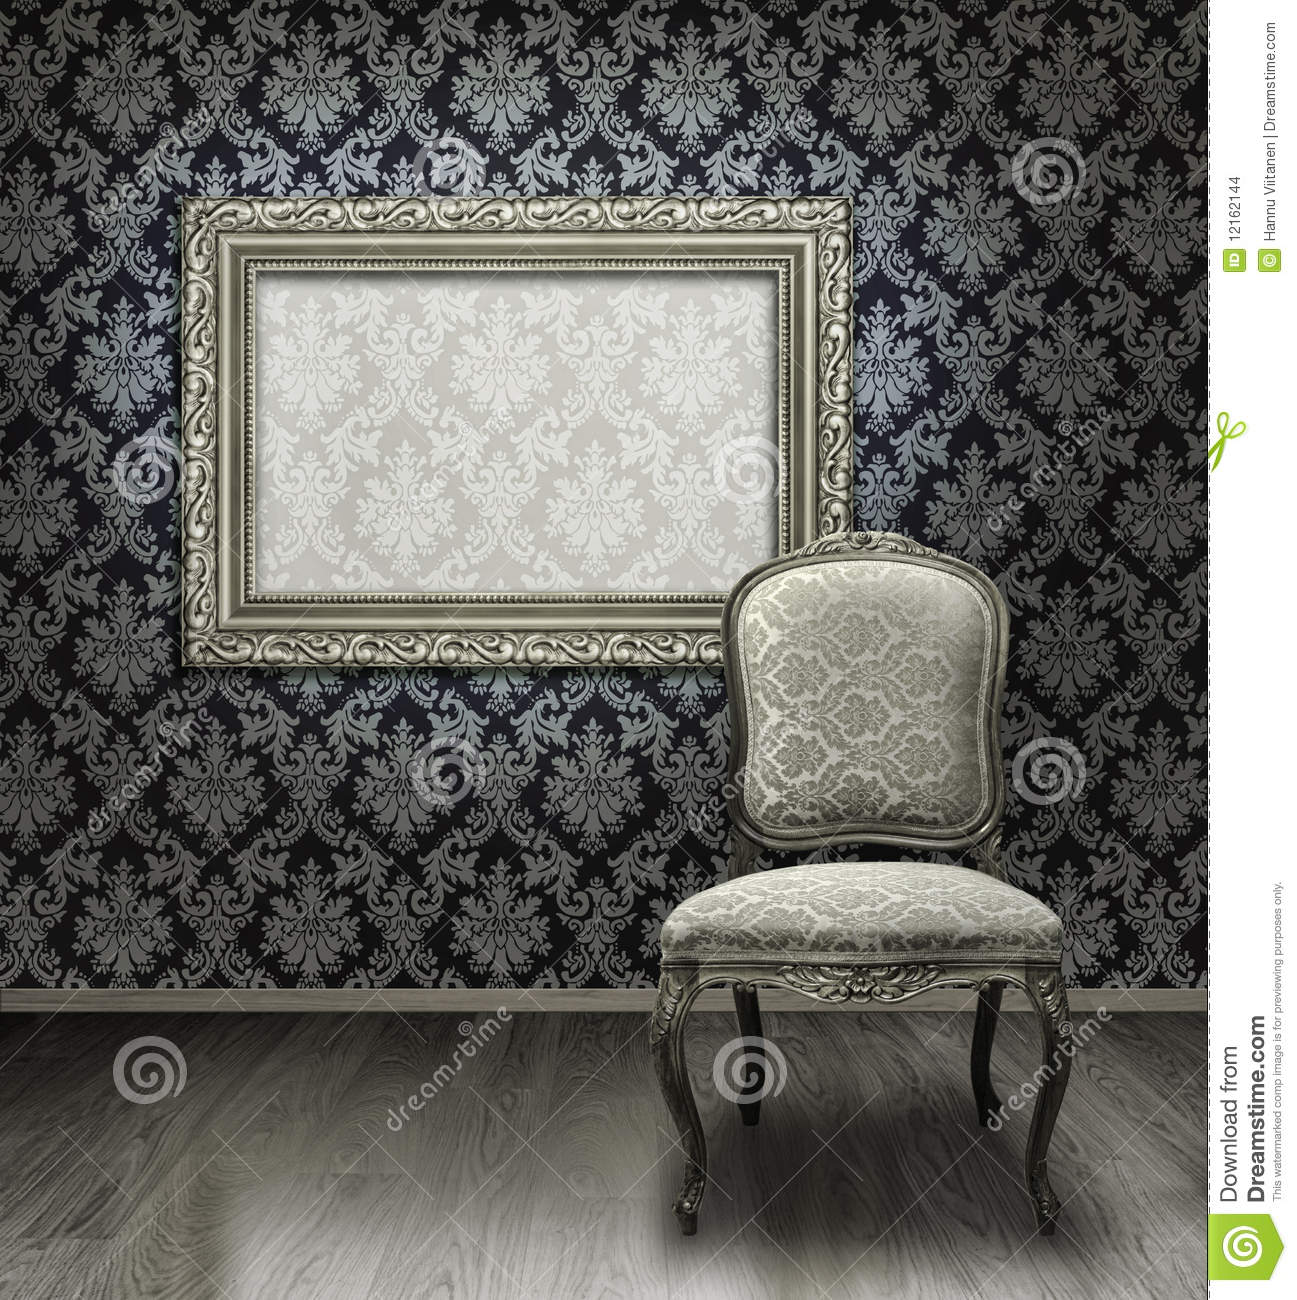 bce03067368a Classic antique chair and silver plated frame in room with damask pattern  wall